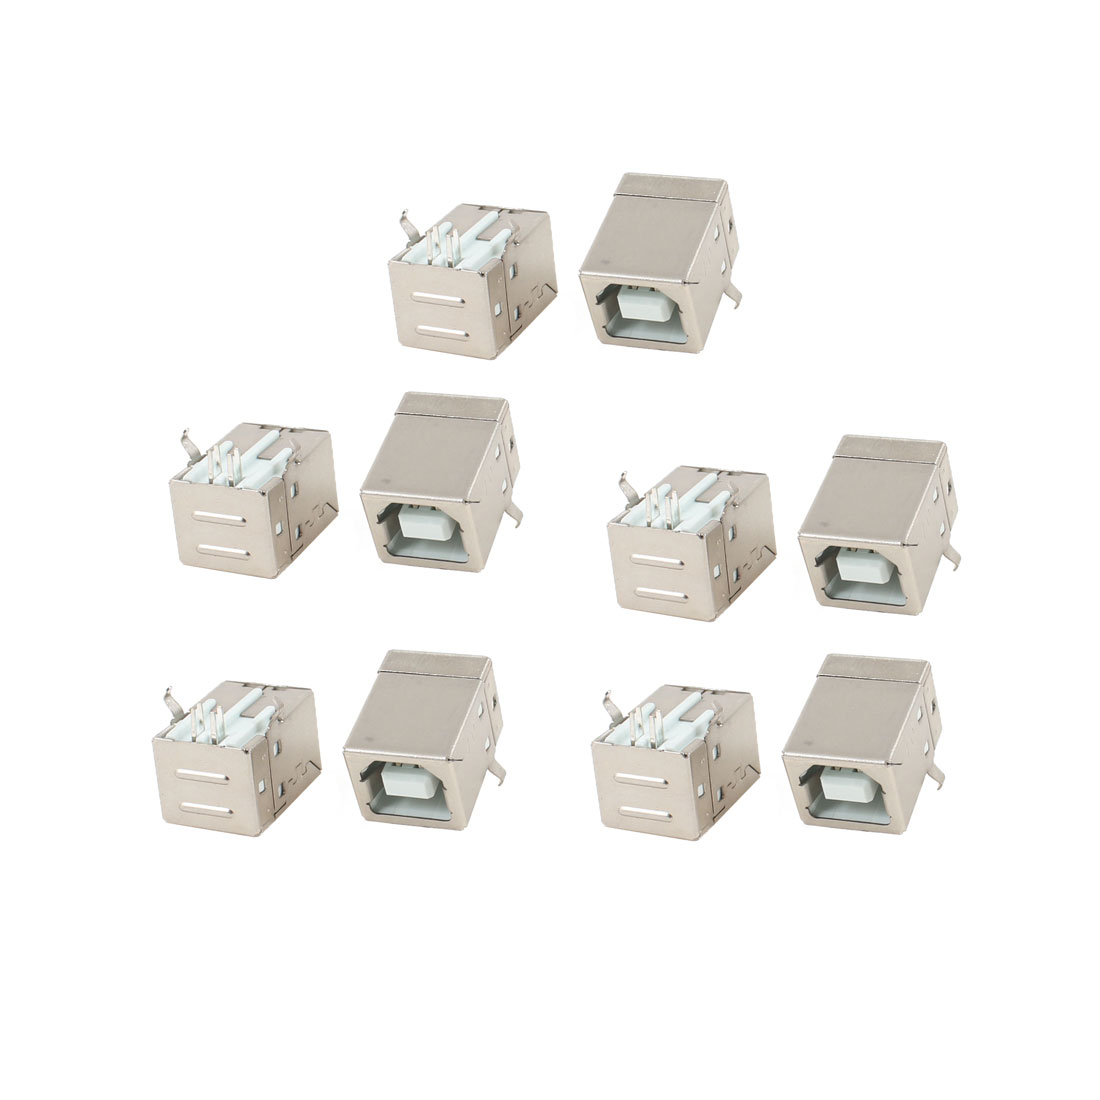 10 Pcs PCB Mount 90 Degree 4 Pin USB 2.0 Type B Female Jack Socket